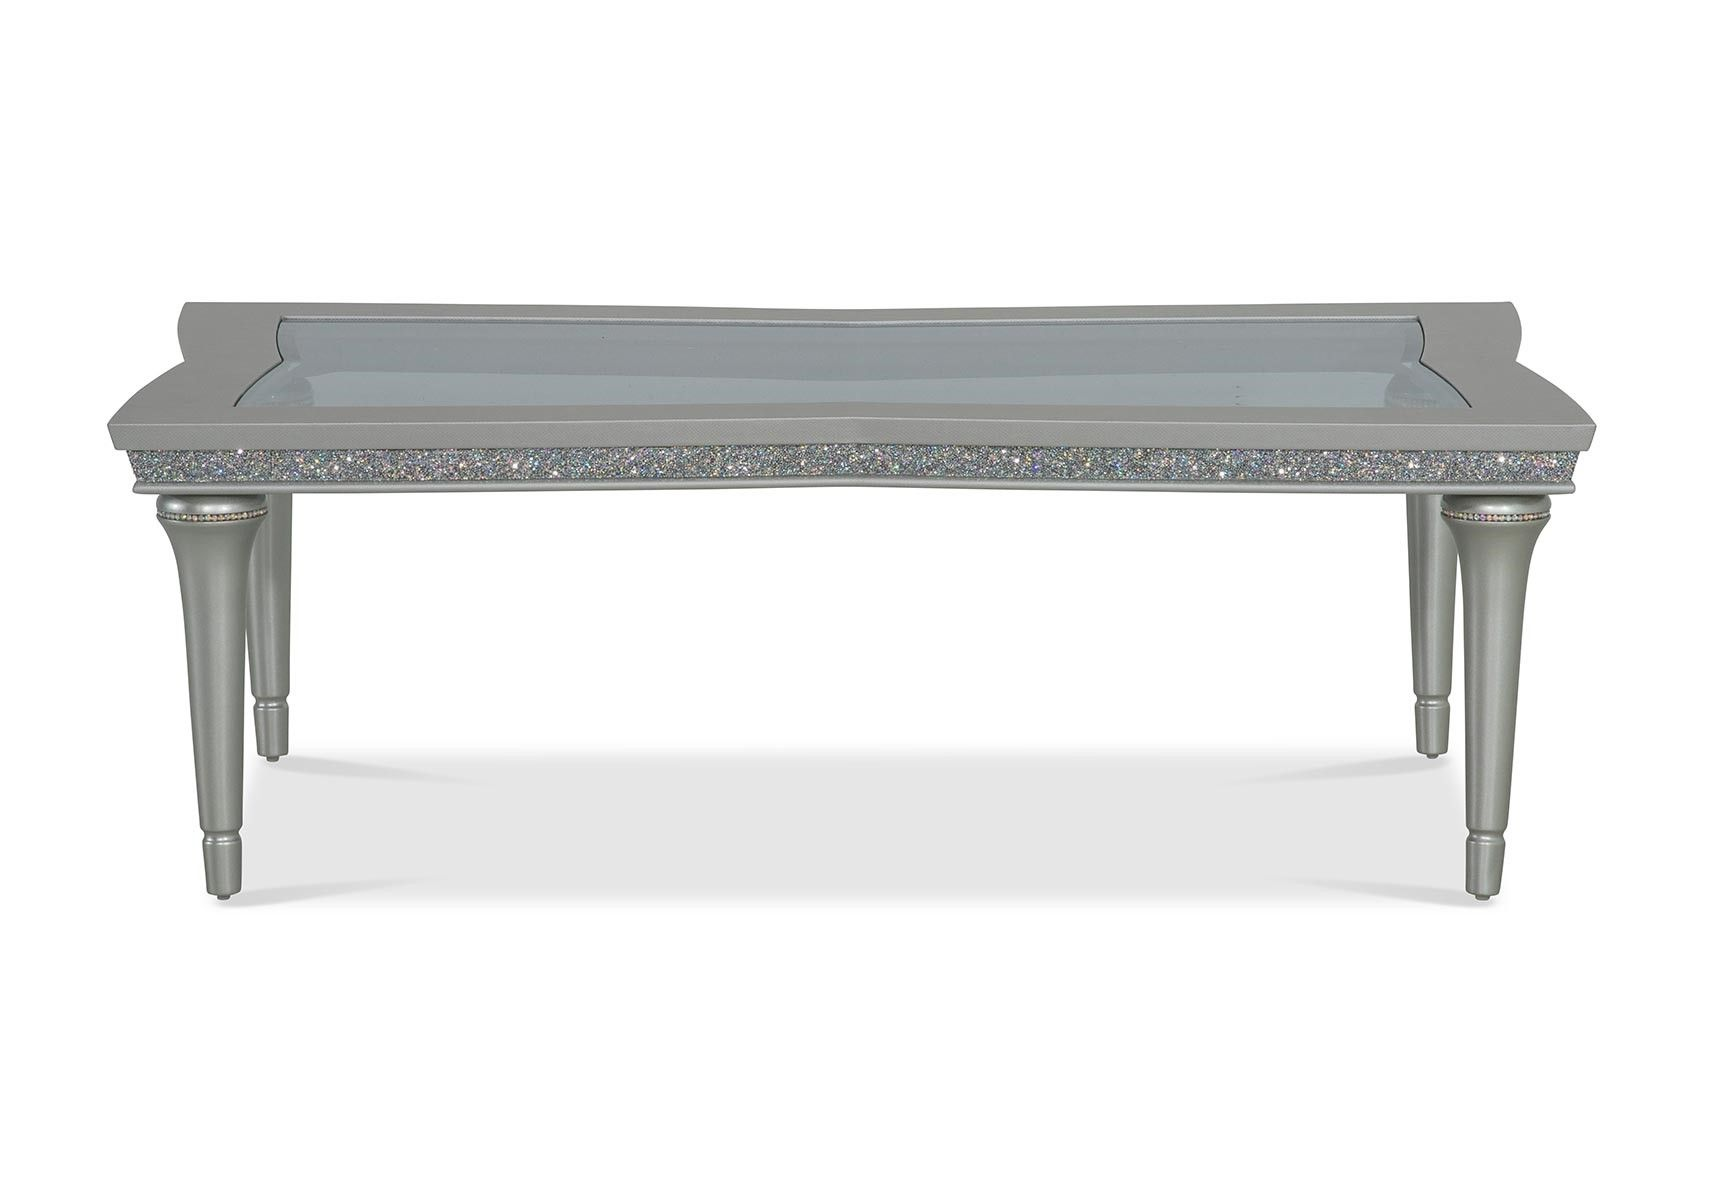 Lacks Melrose Plaza Coffee Table Coffee Table Table Glamorous Living [ 1202 x 1710 Pixel ]